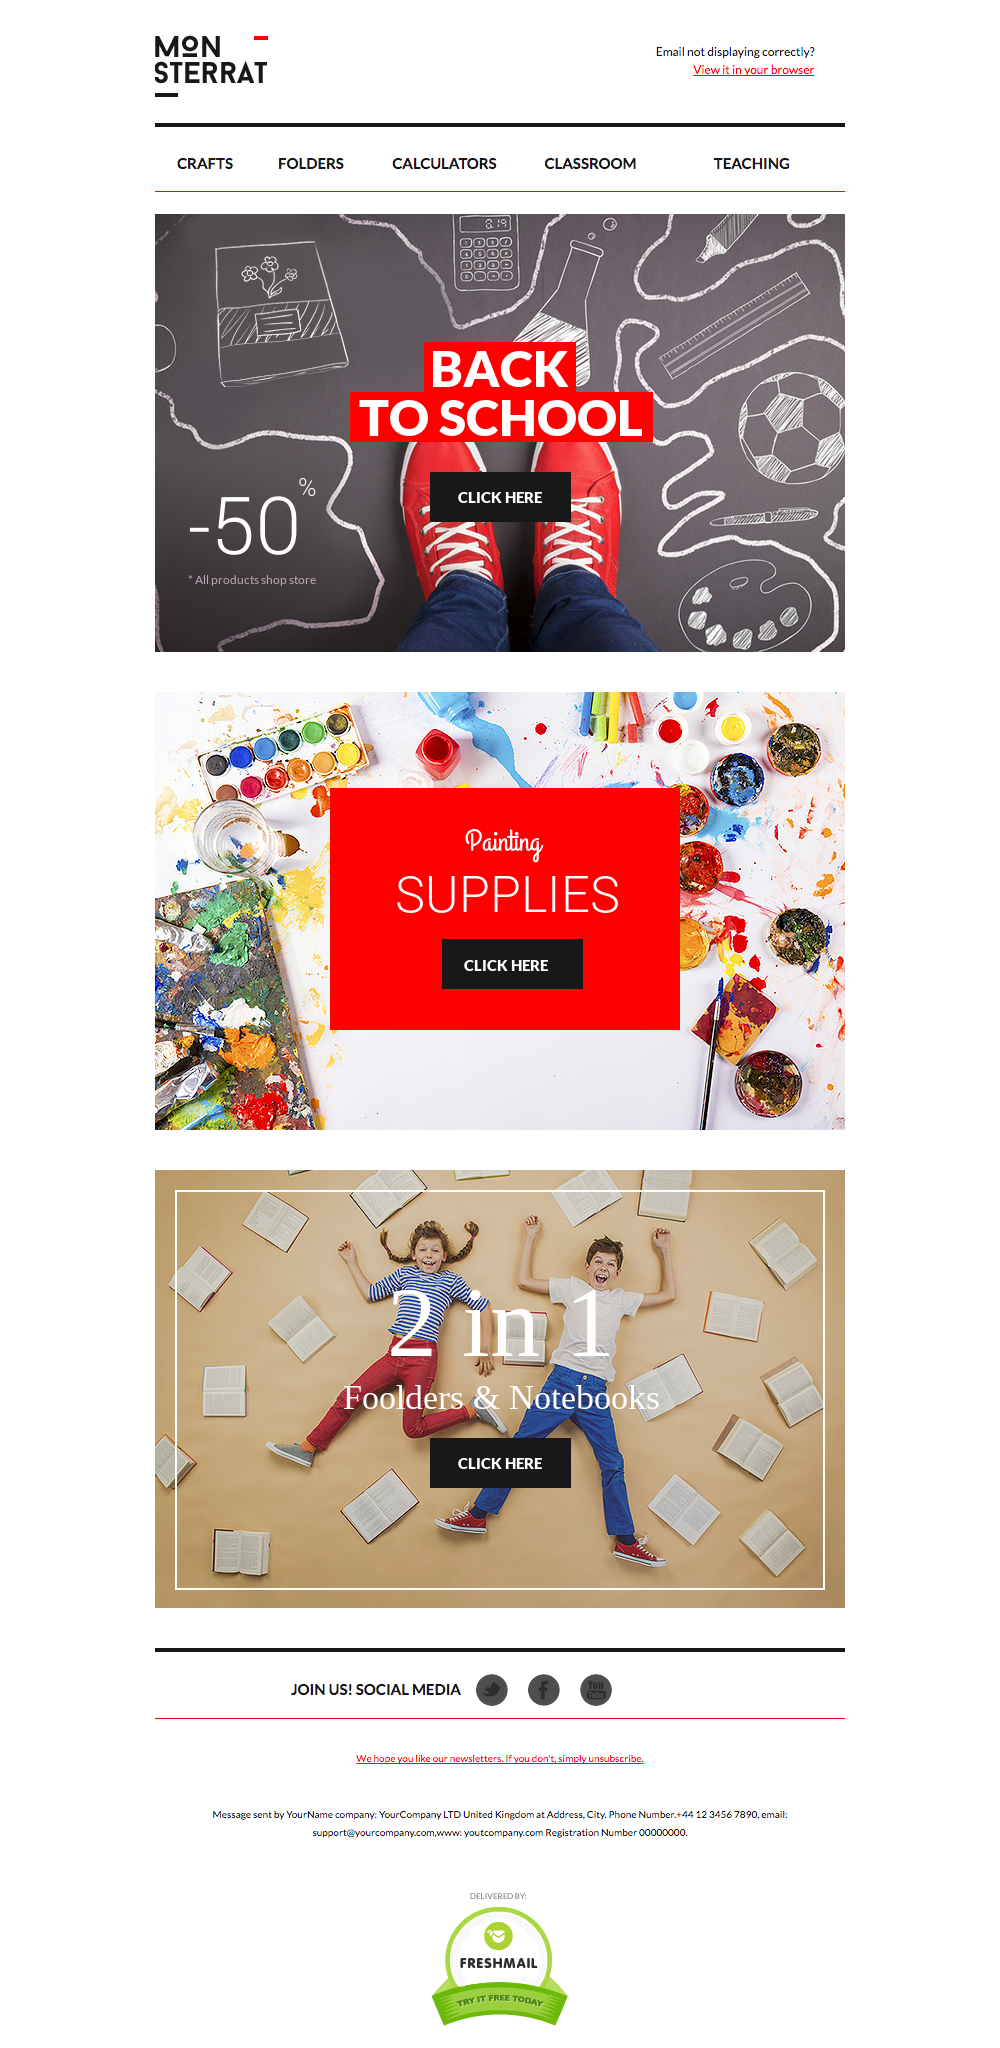 Back To School Newsletter template design ideas & examples for